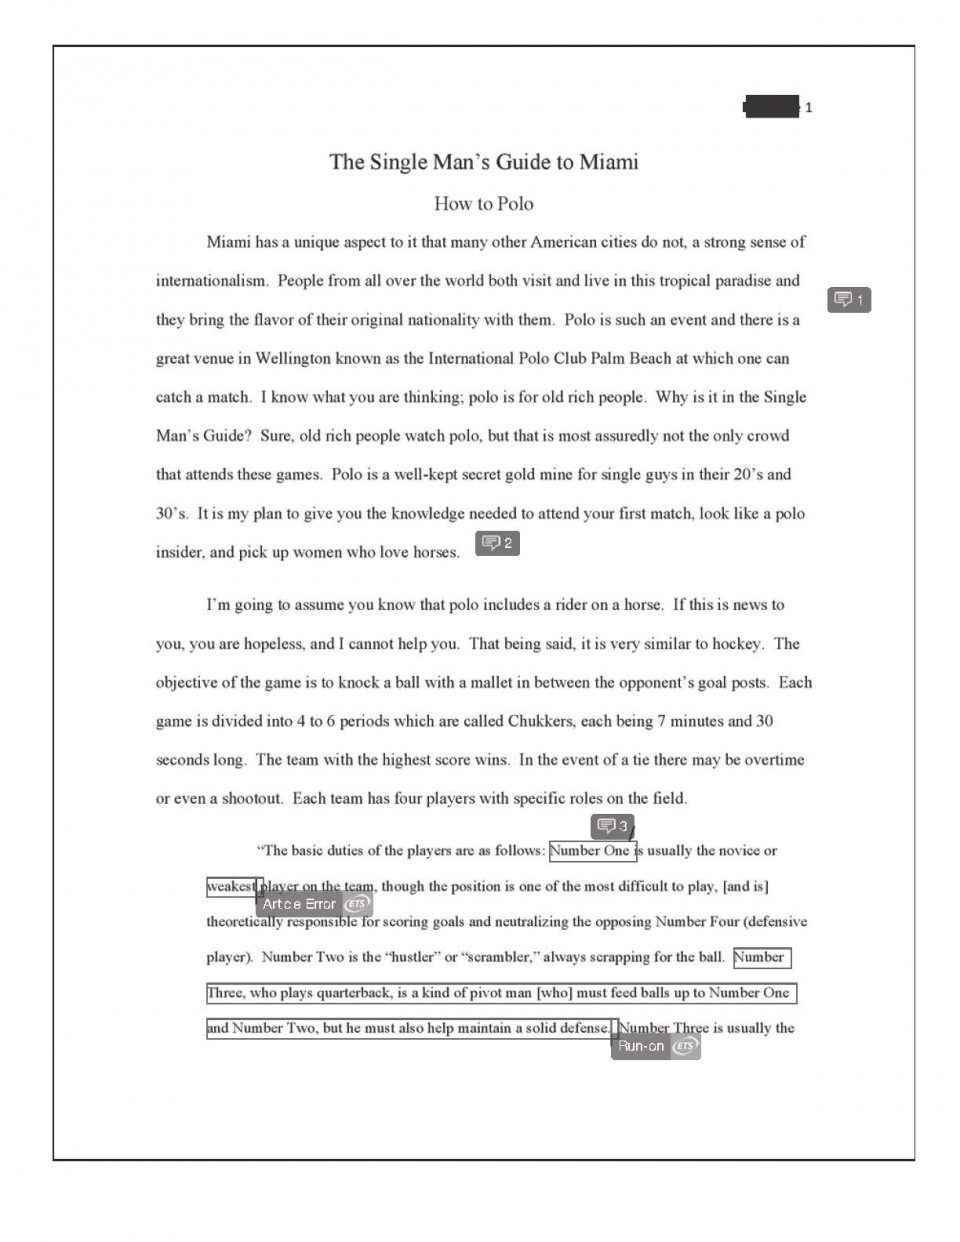 007 Informative Essay Kinds Of Writing Types Essays The Center In Hindi Final How To Polo Redacted P Pdf Task Slideshare Ppt Withs Wikipedia Dreaded Graphic Organizer Middle School Rubric 6th Grade Topics 960